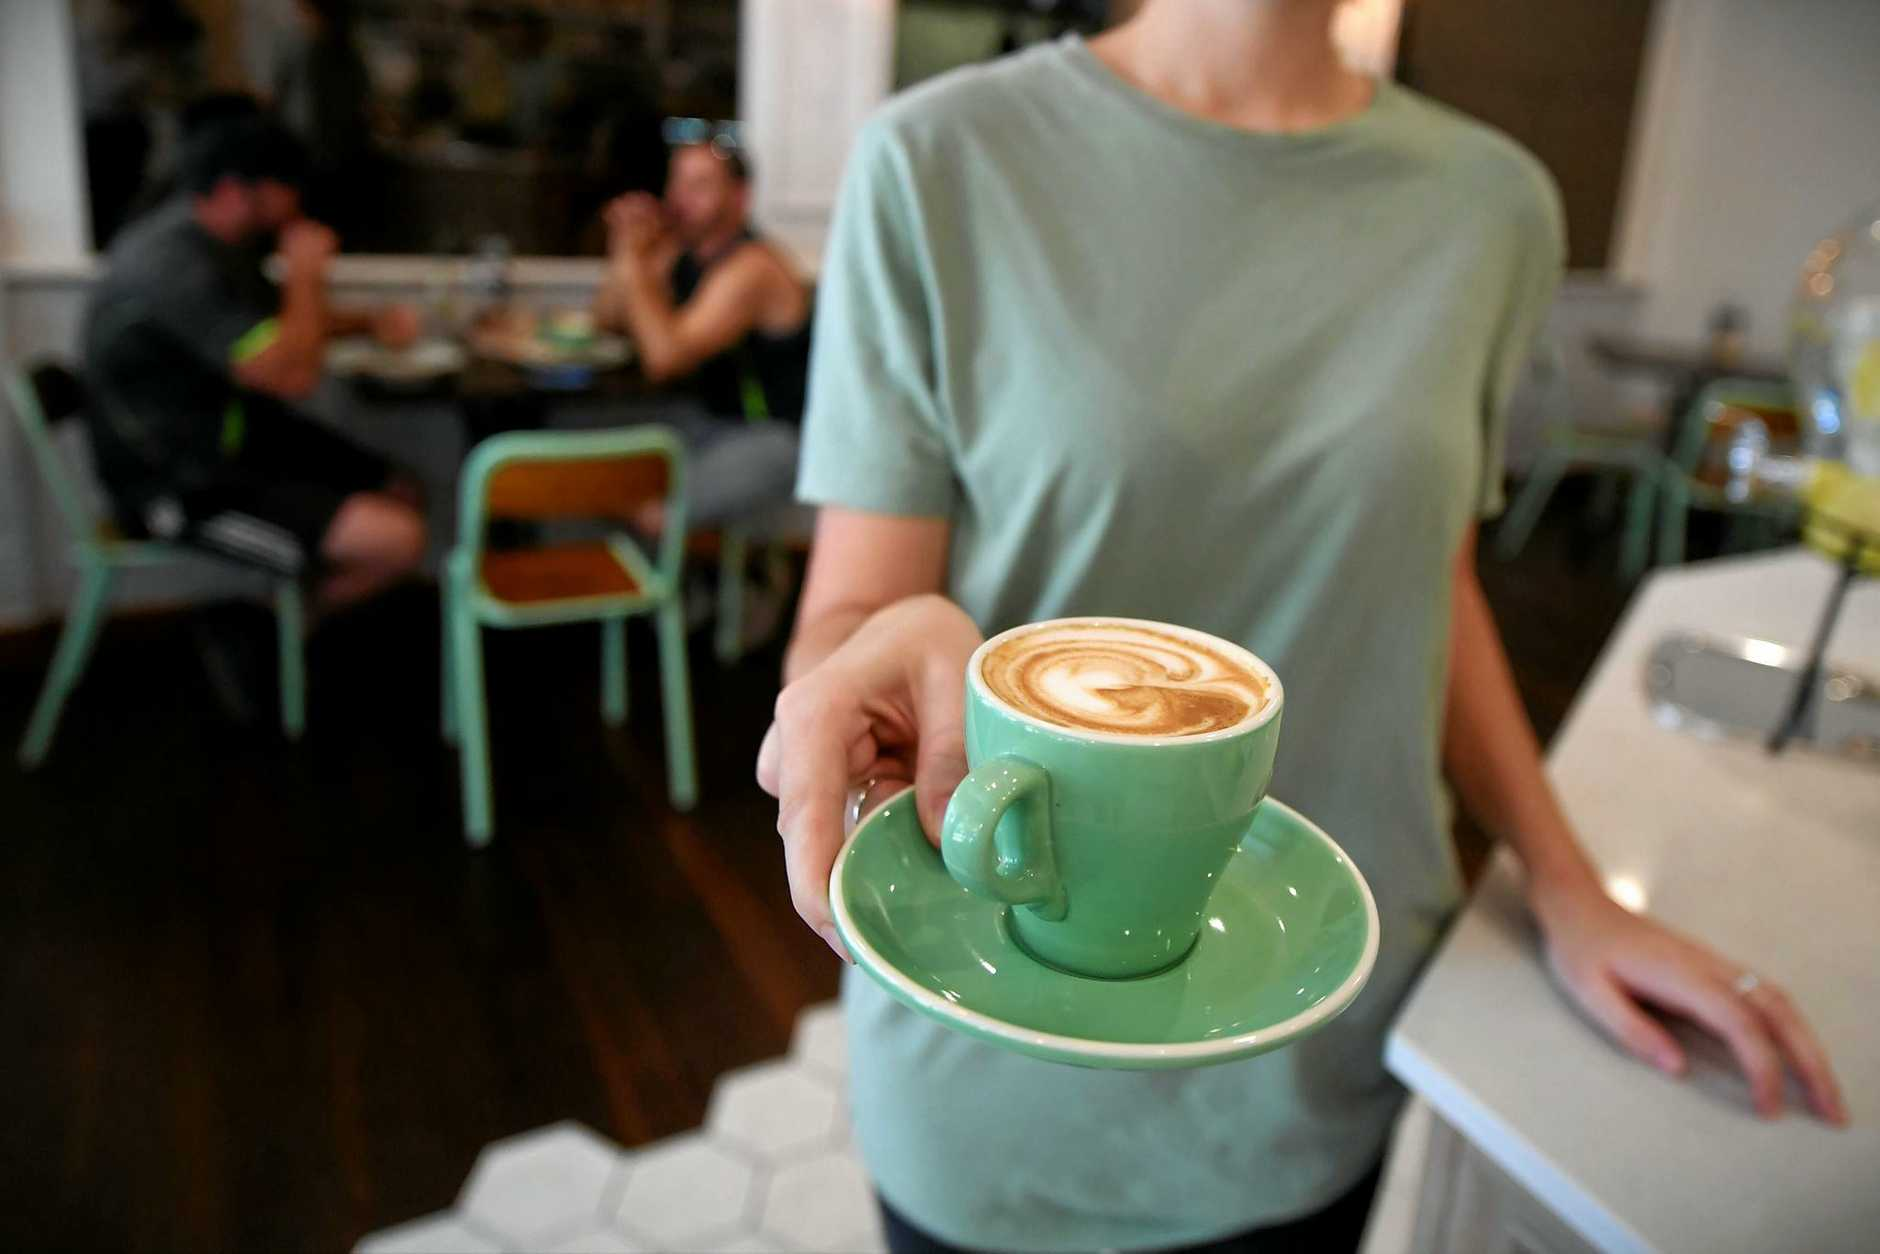 A waitress is seen holding a coffee at a cafe in Canberra. The Fair Work Commission yesterday announced cuts to Sunday and public holiday penalty rated in the retail and hospitality industries.